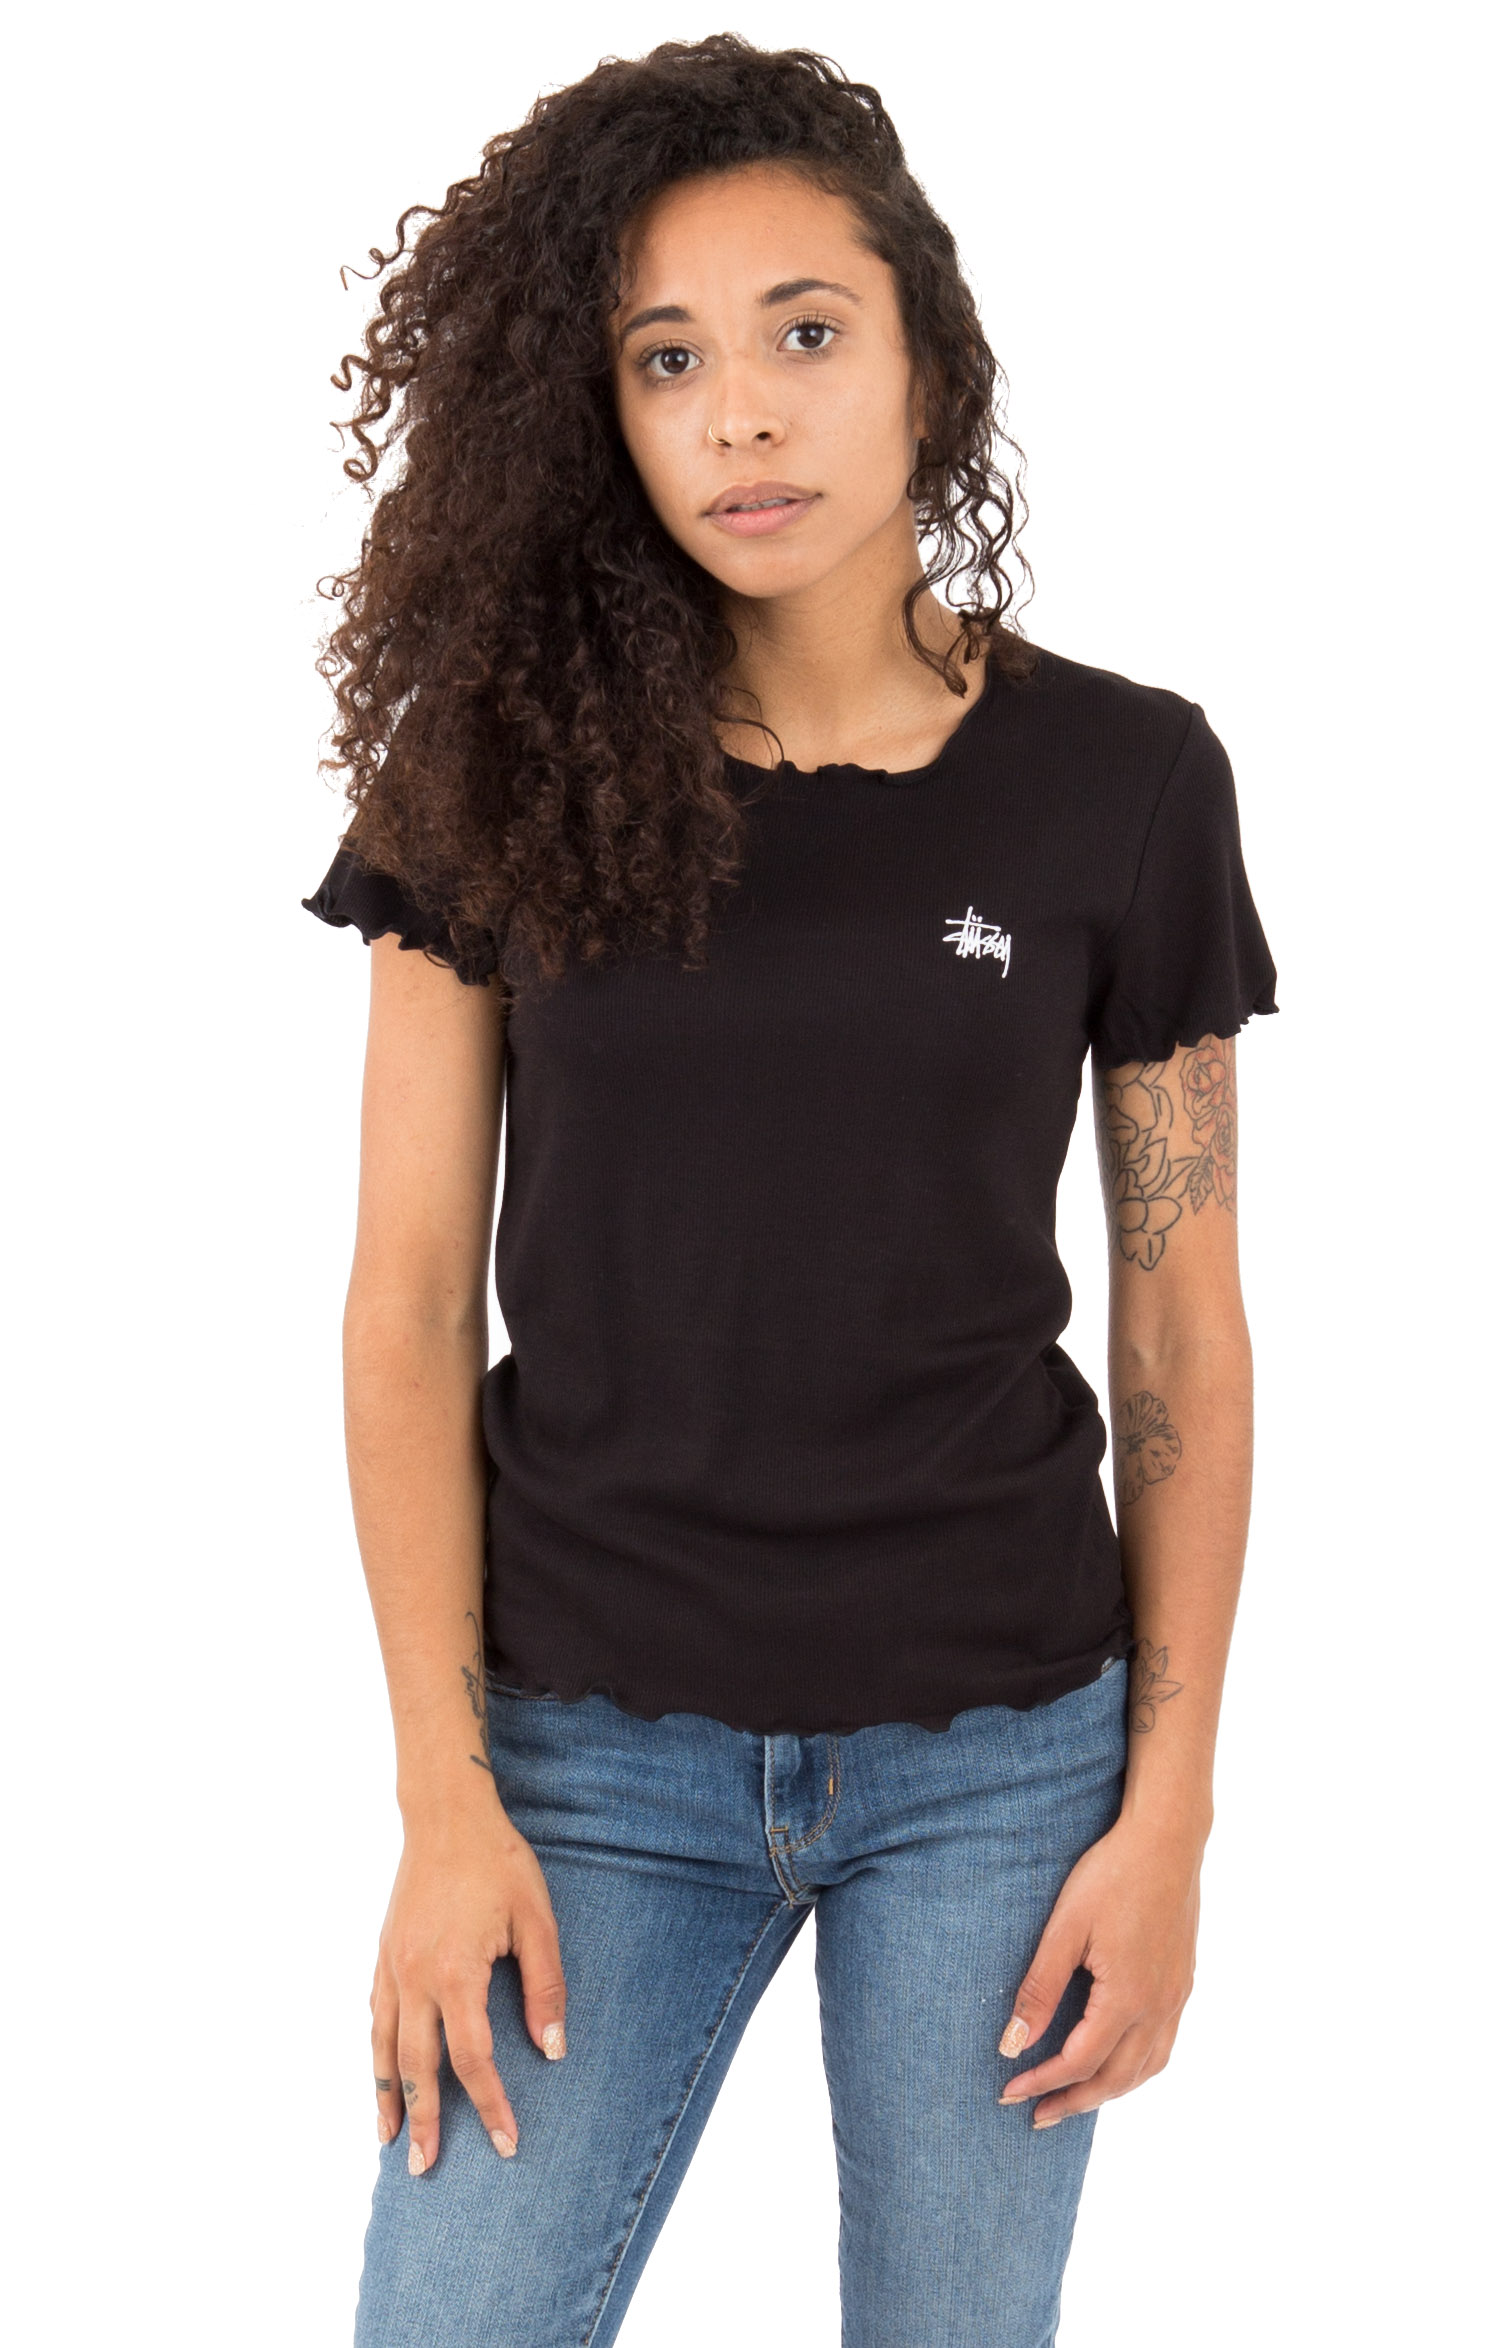 Pepper Lettuce Edge T-Shirt - Black